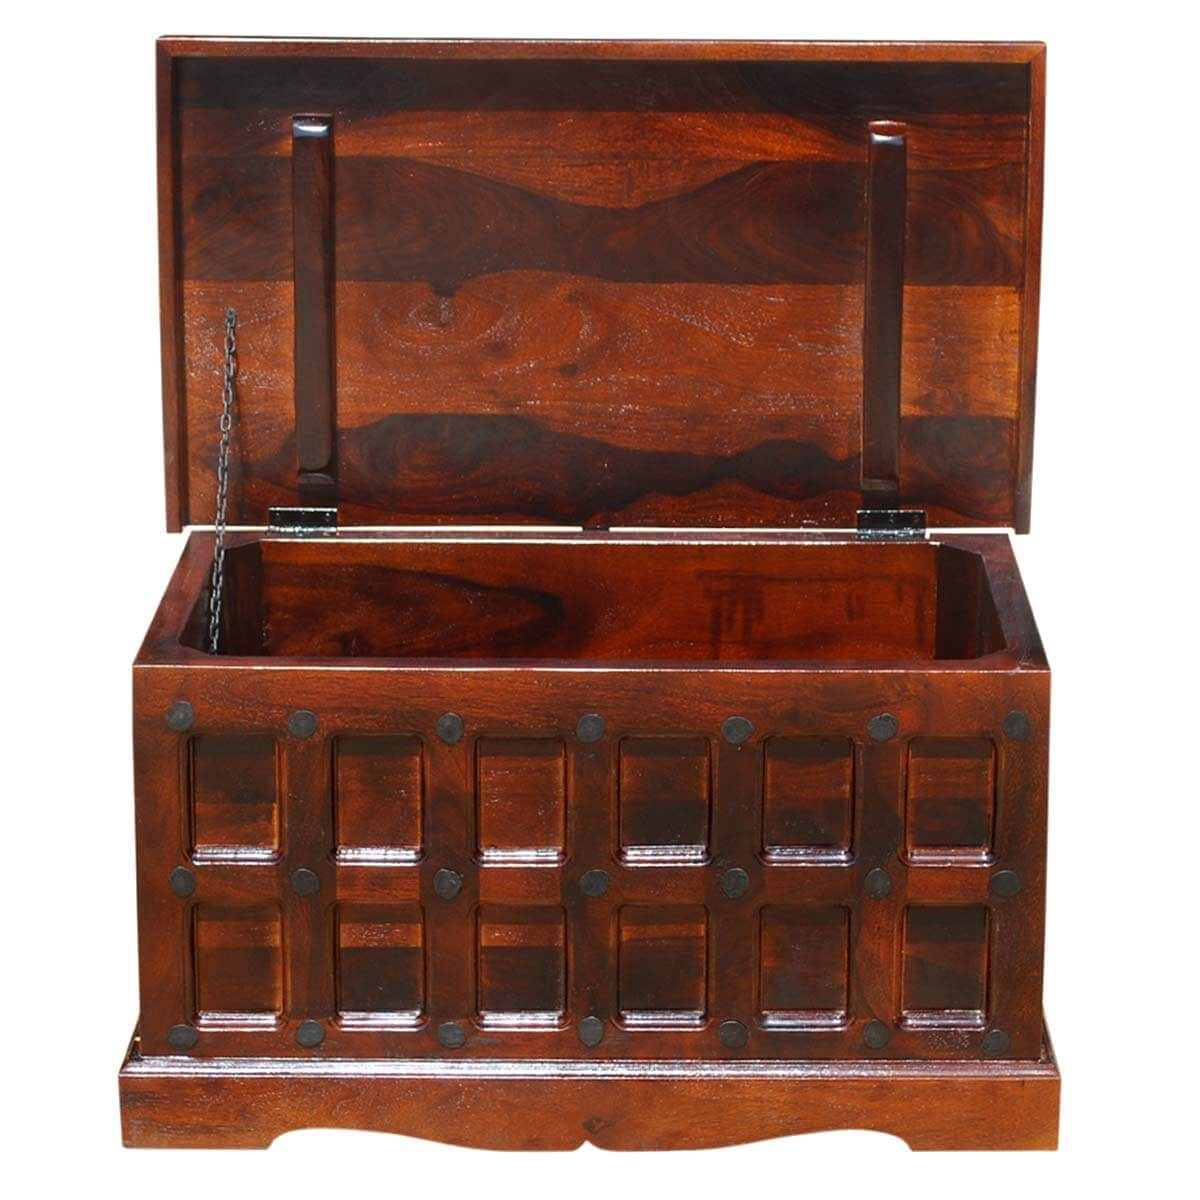 Trunk Coffee Table With Storage: Solid Wood Trunk Coffee Table Blanket Storage Chest